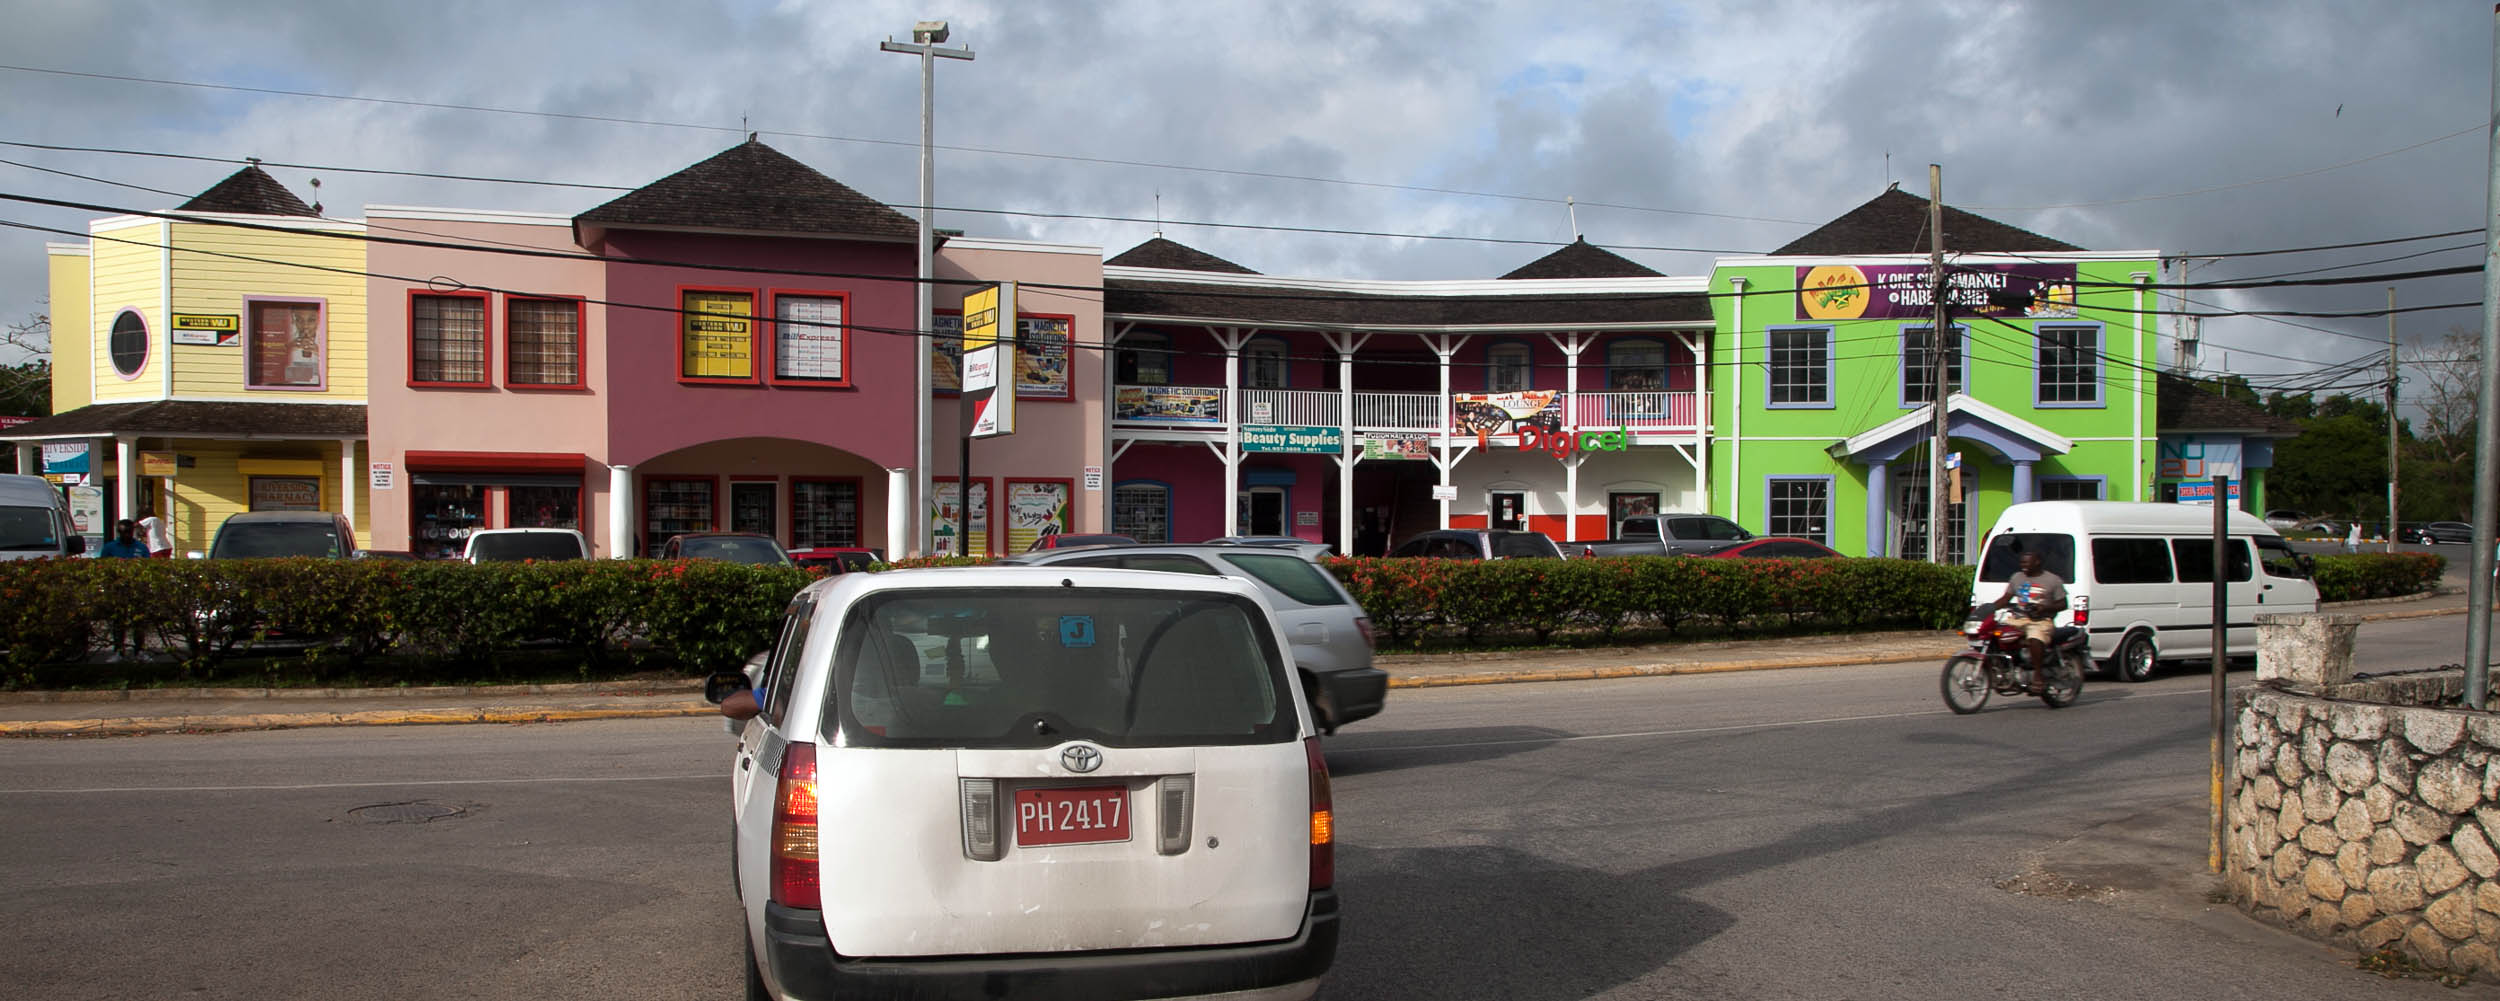 Negril Center Shopping - Negril Jamaica